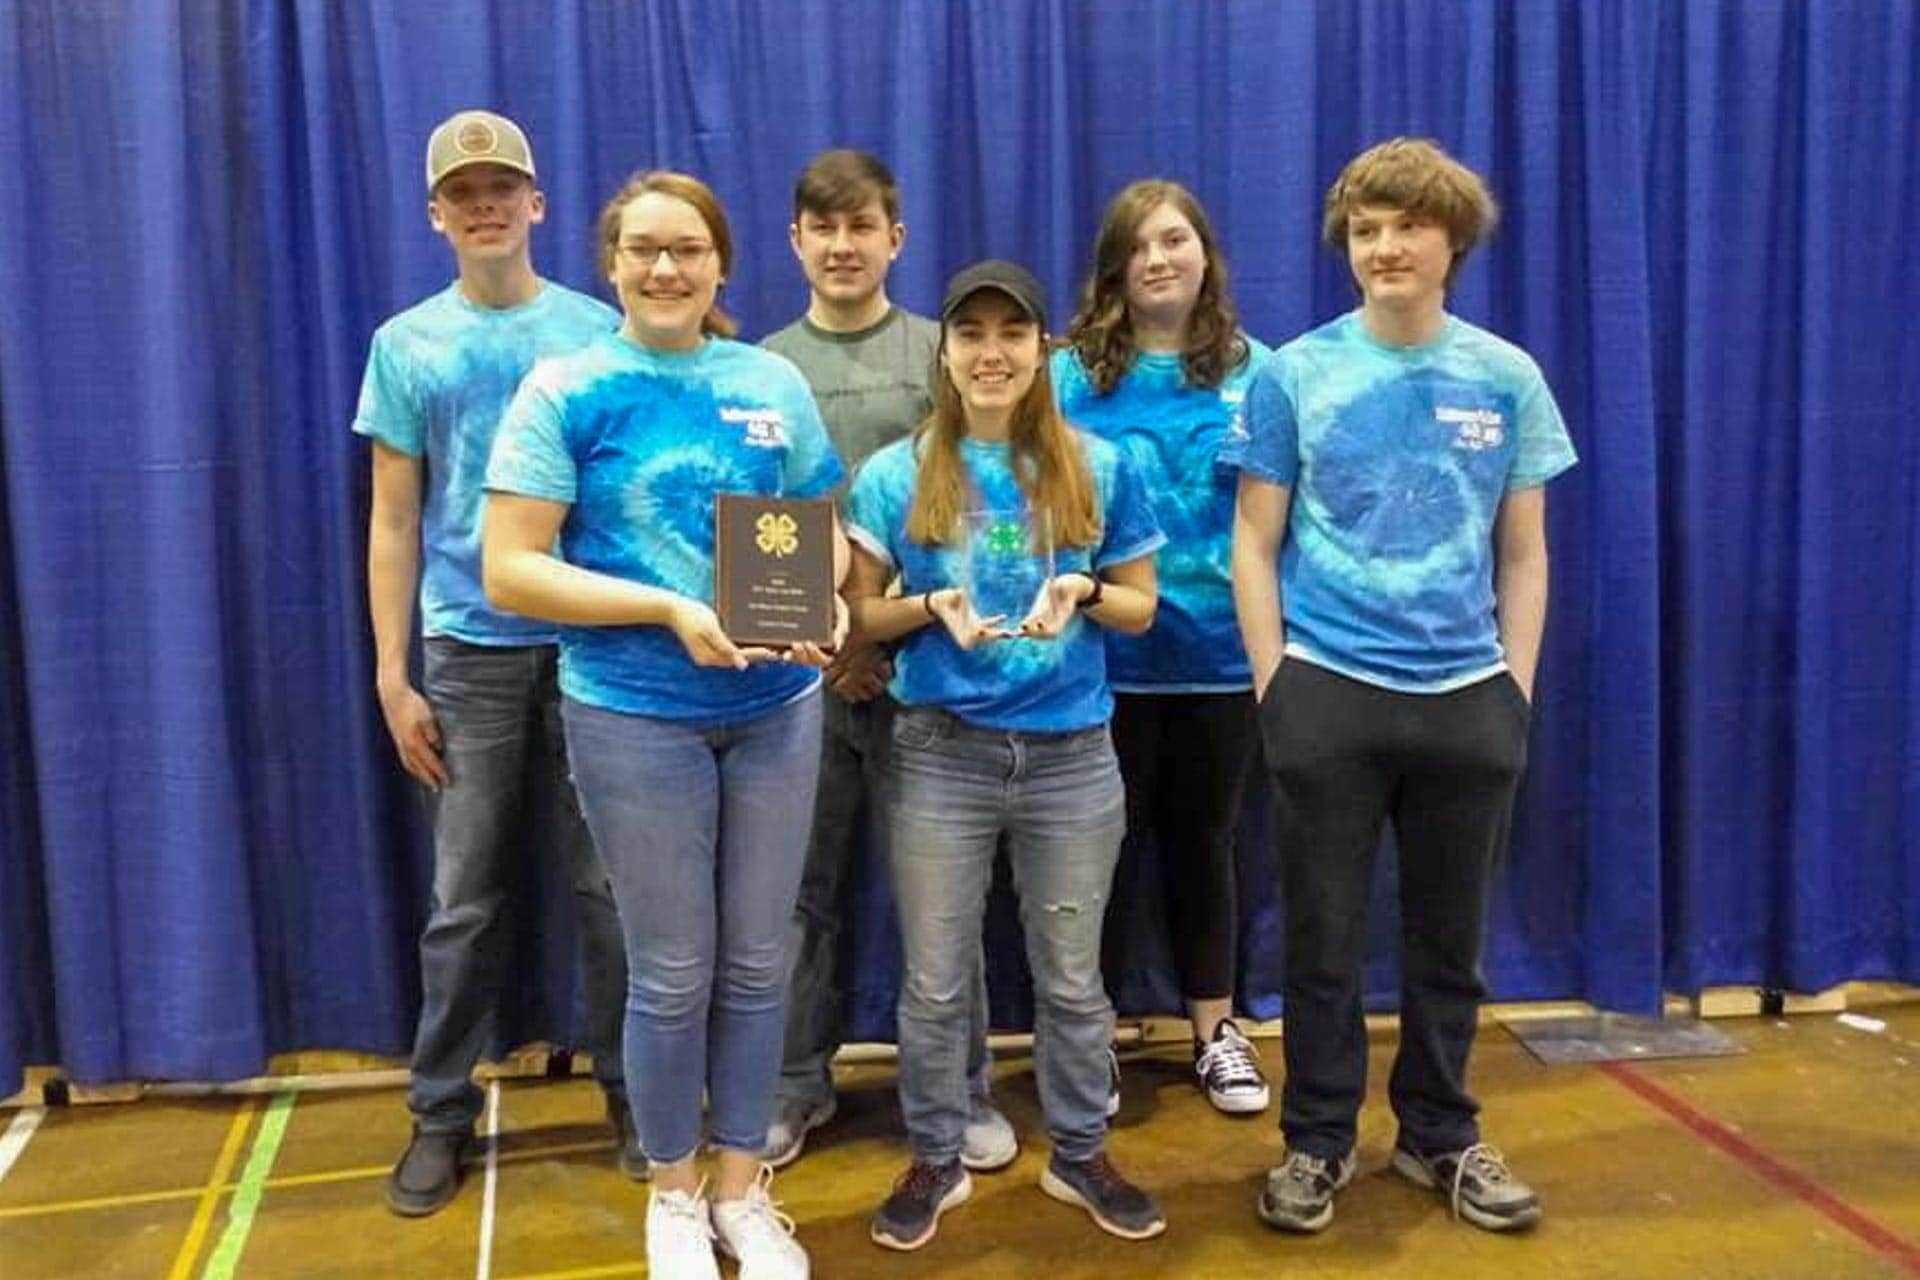 Right on target: Upshur County's senior air rifle team takes top spot in state tourney